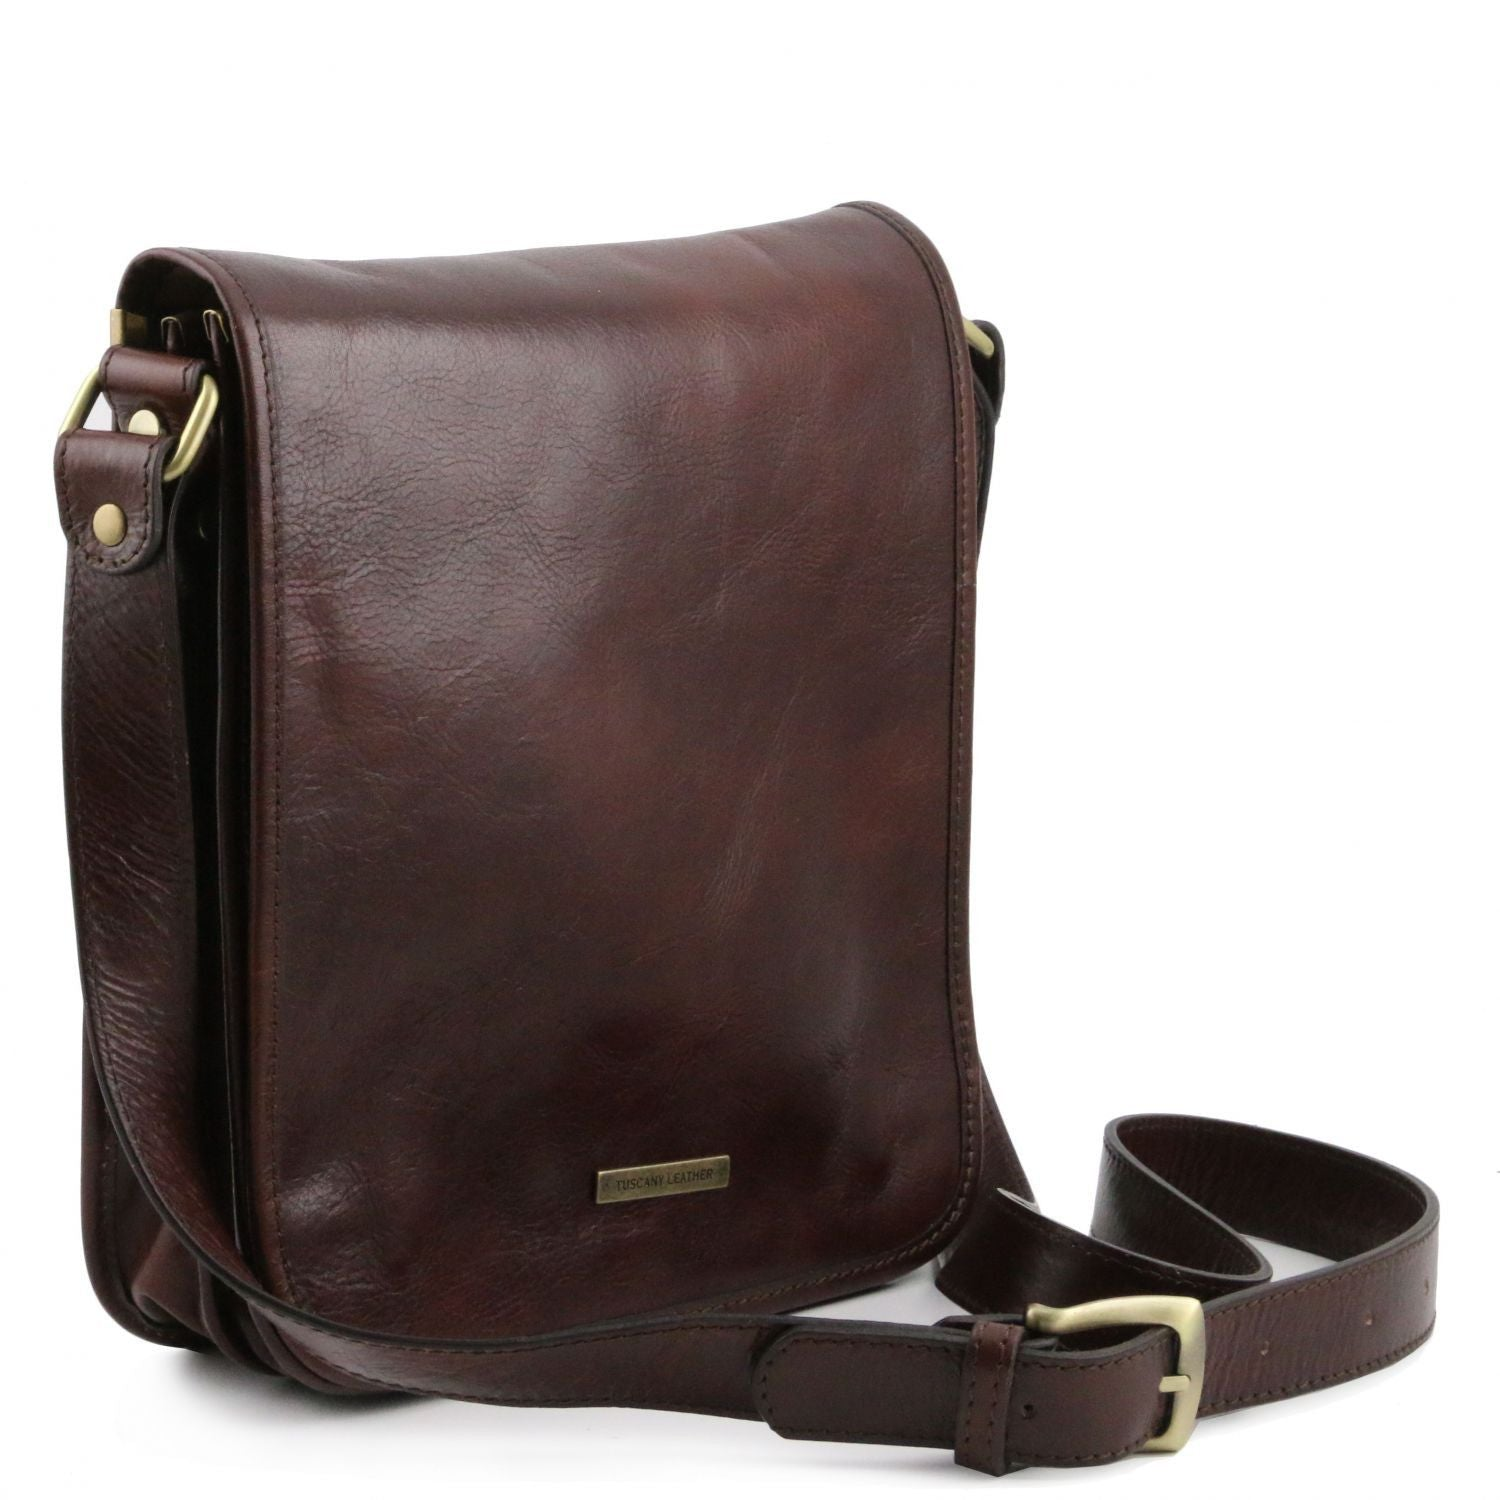 TL Messenger - Two compartments leather shoulder bag (TL141255) - Leather bags for men | DILUSSOBAGS